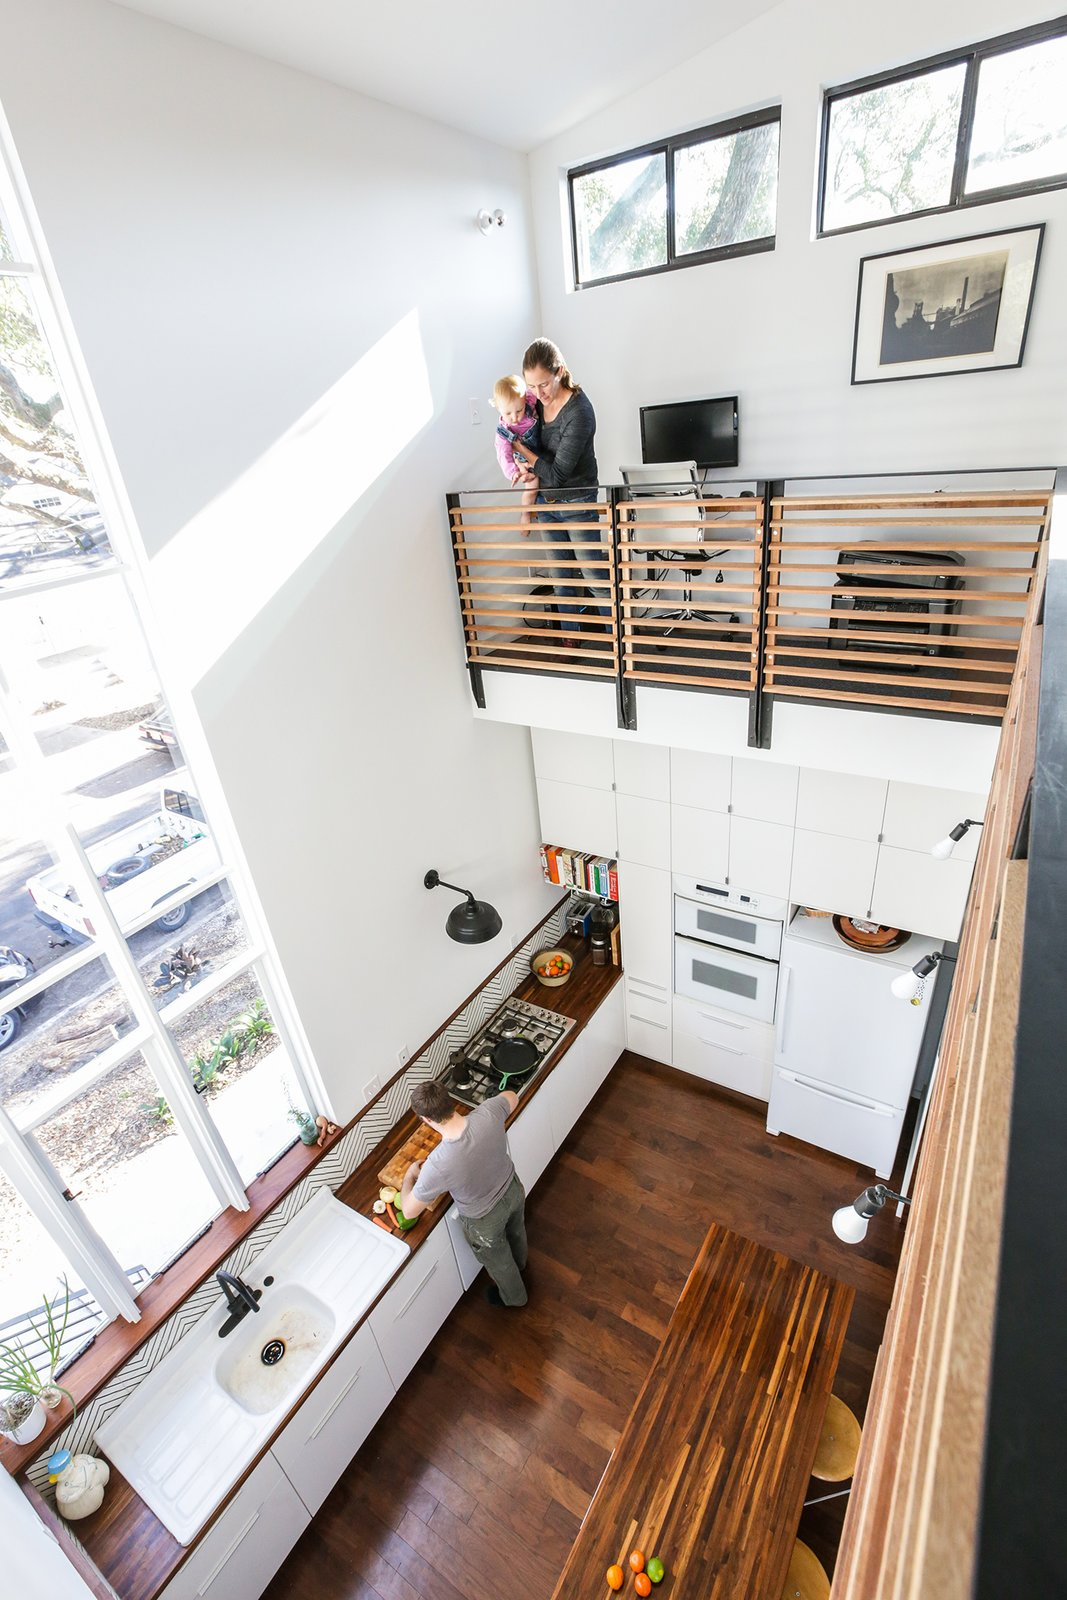 Kitchen, Wood Counter, Dark Hardwood Floor, White Cabinet, Ceramic Tile Backsplashe, Wall Oven, Refrigerator, and Drop In Sink The double height interior space overlooks the kitchen. A large custom operable assembly of windows frames views to the Oak lined street.   Dorgenois